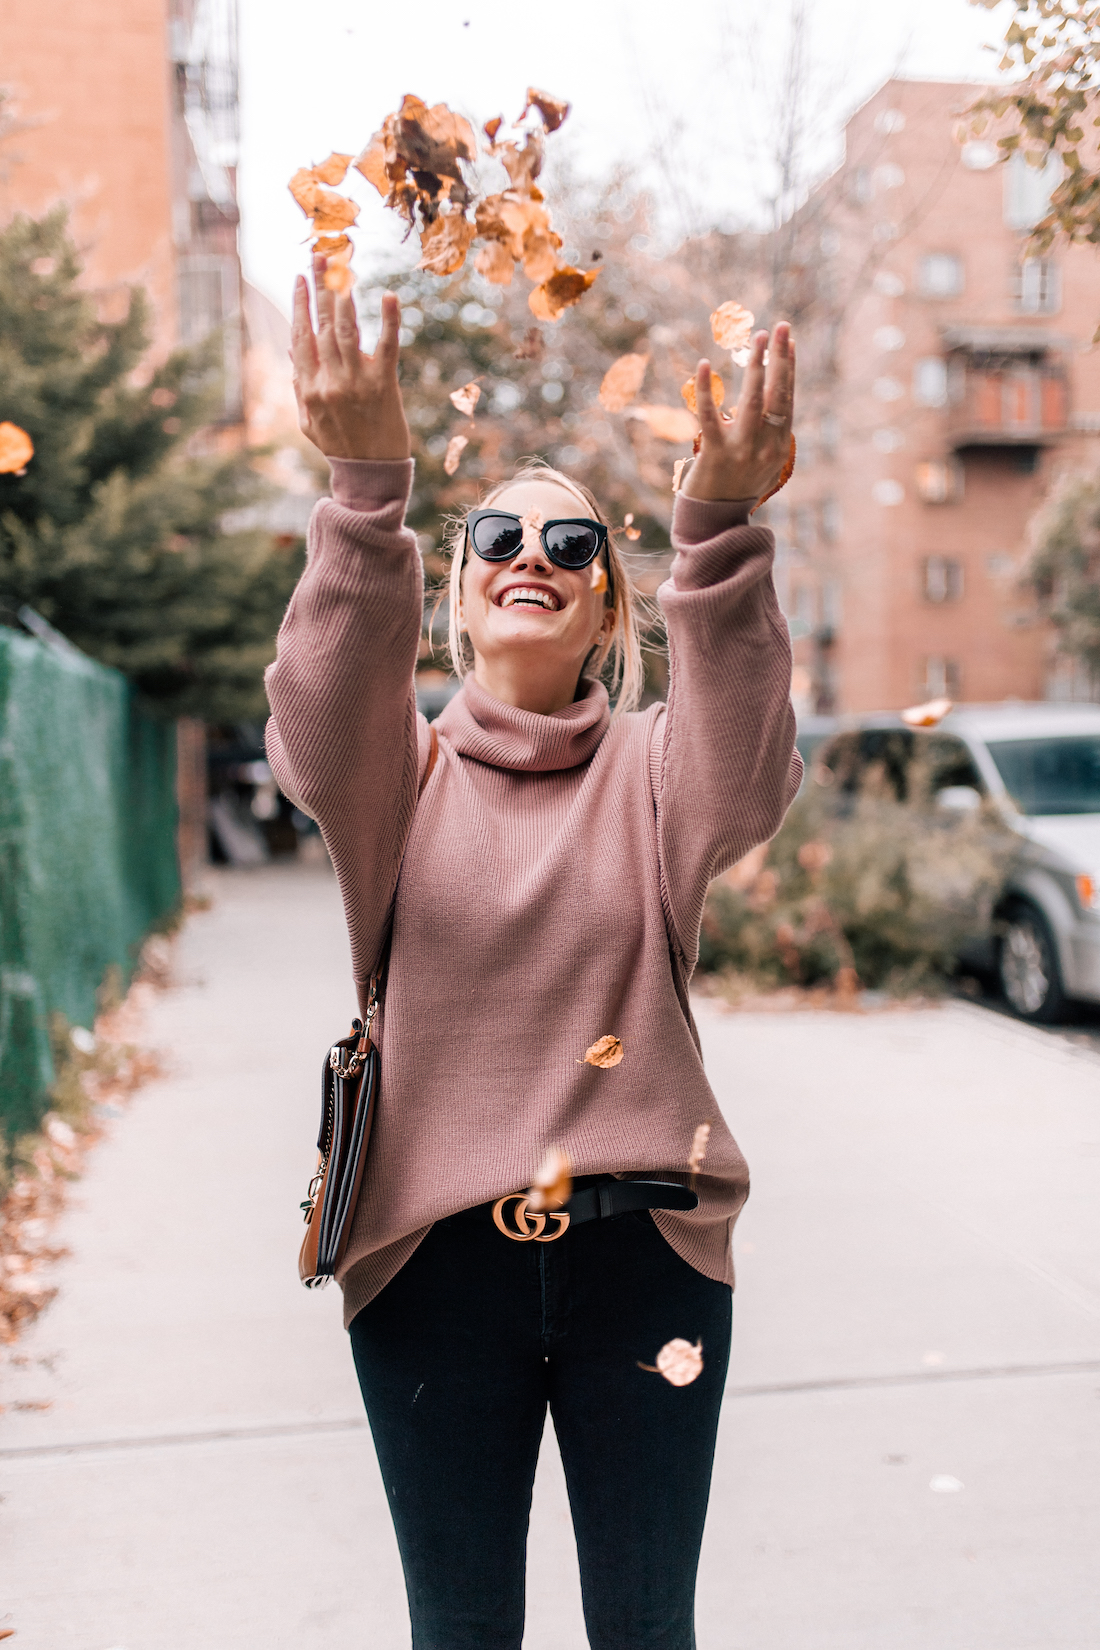 Free People Softly Structured Tunic Sweater // American Eagle Jeans // Gucci Belt // Chloe Faye Bag // Karen Walker Sunglasses // Charlotte Tilbury Lipstick